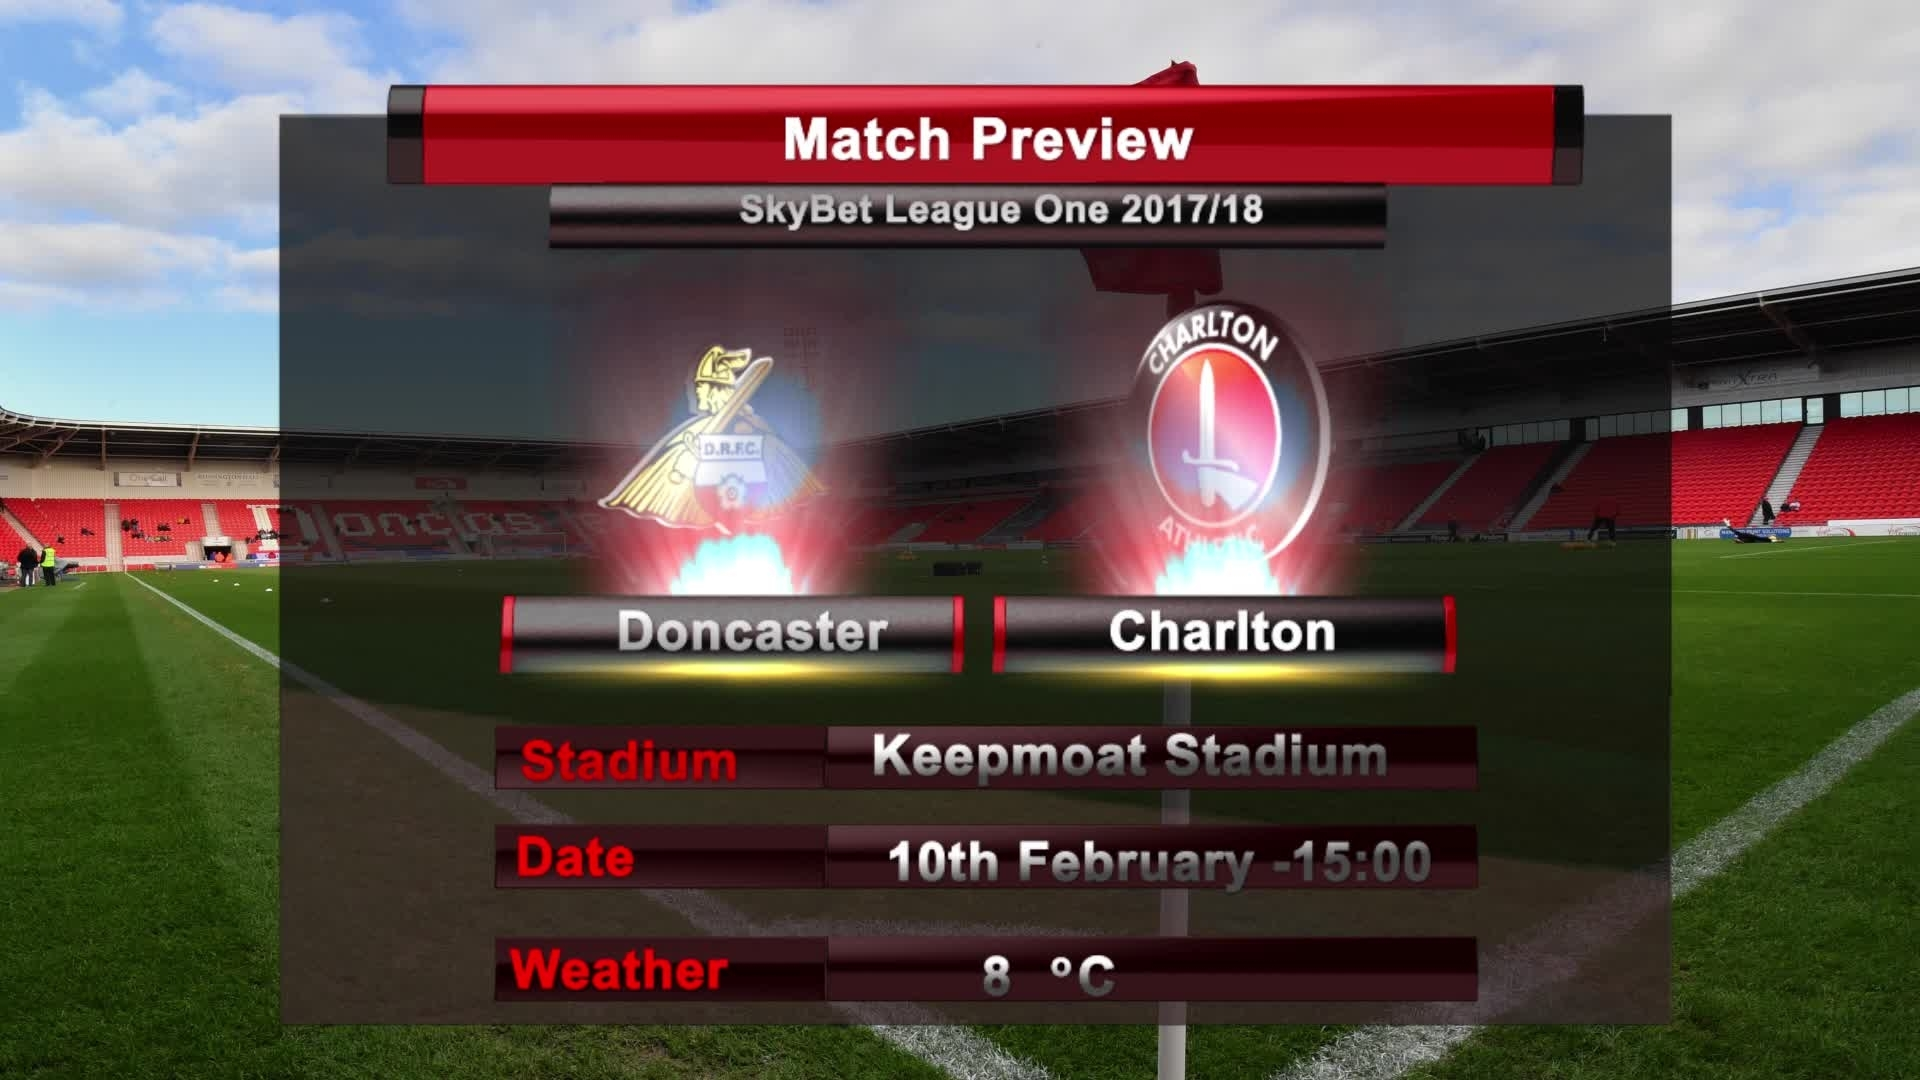 MATCH PREVIEW | Doncaster vs Charlton